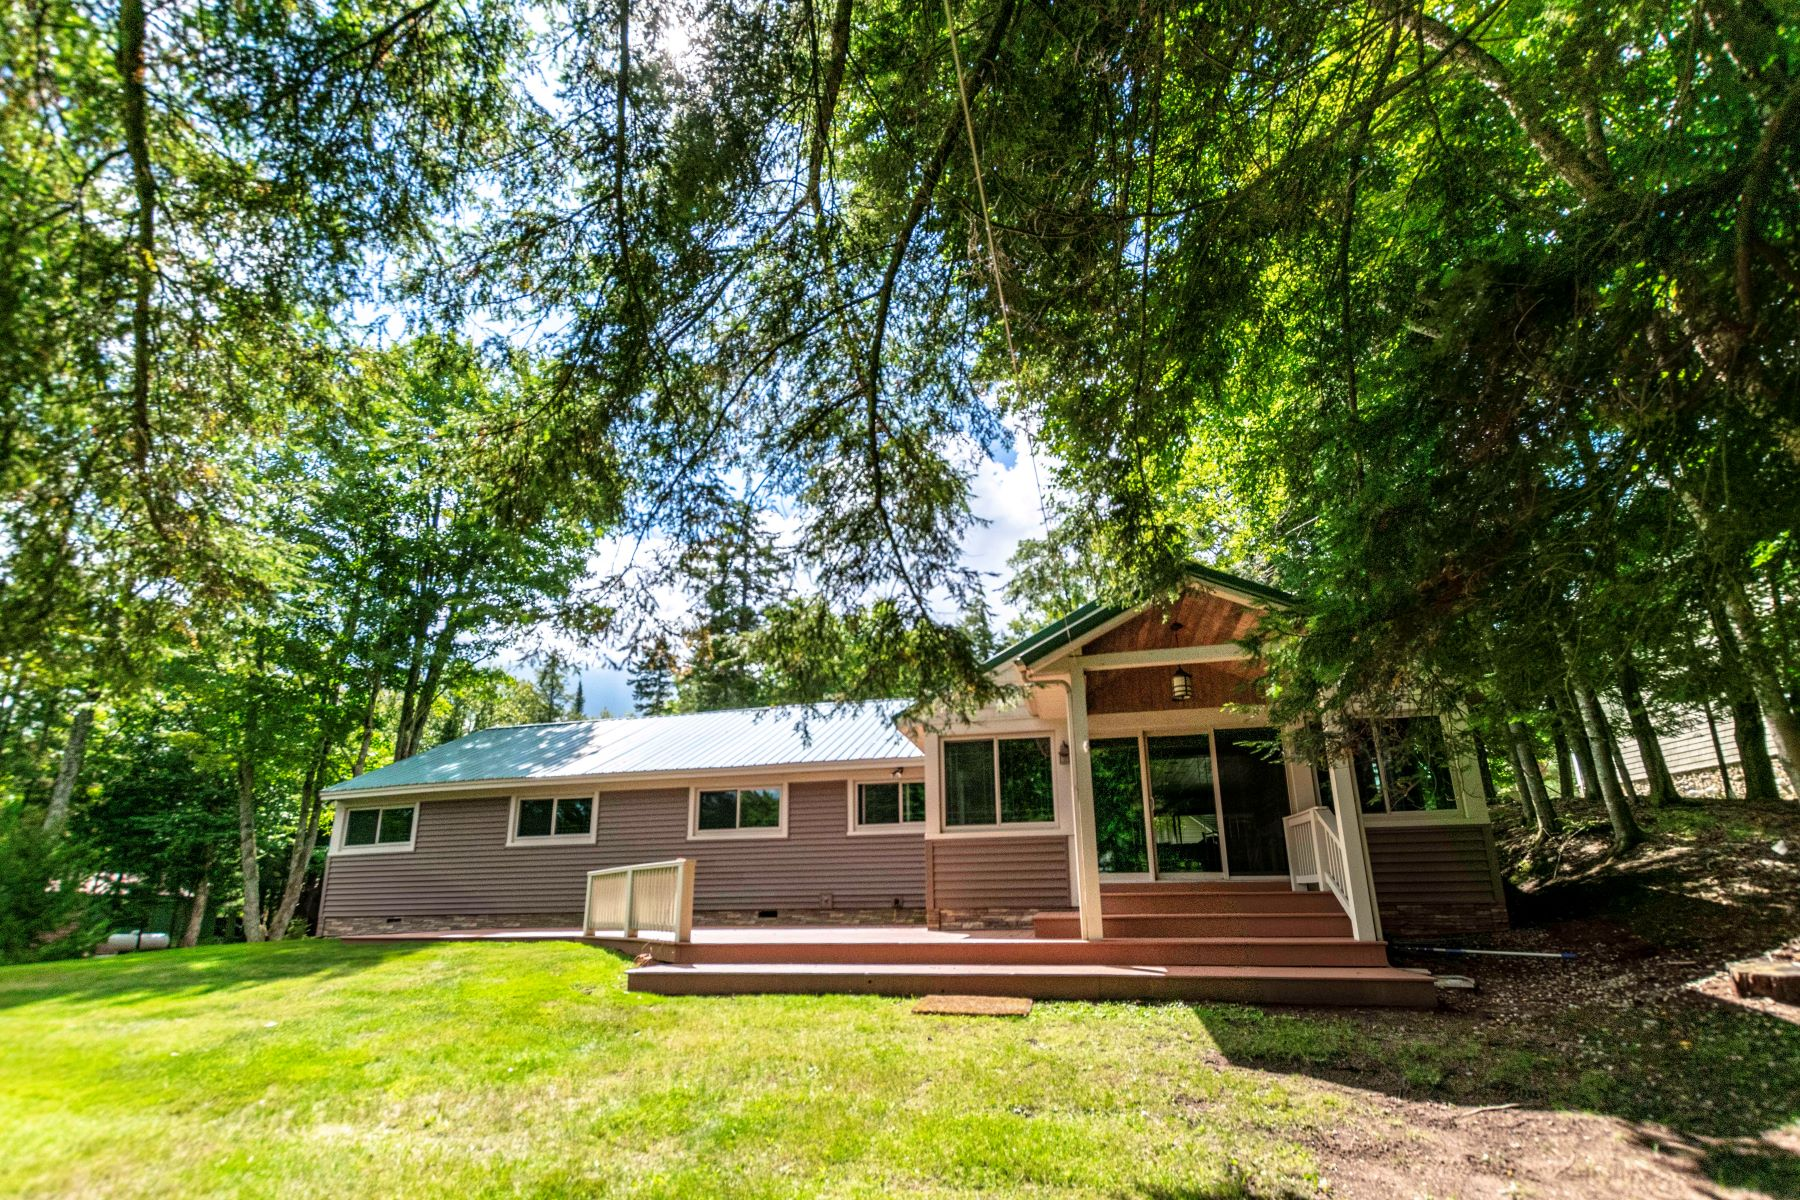 Single Family Homes for Active at Beautiful Waterfront Ranch Style Home 132 Creekside Lane Old Forge, New York 13420 United States